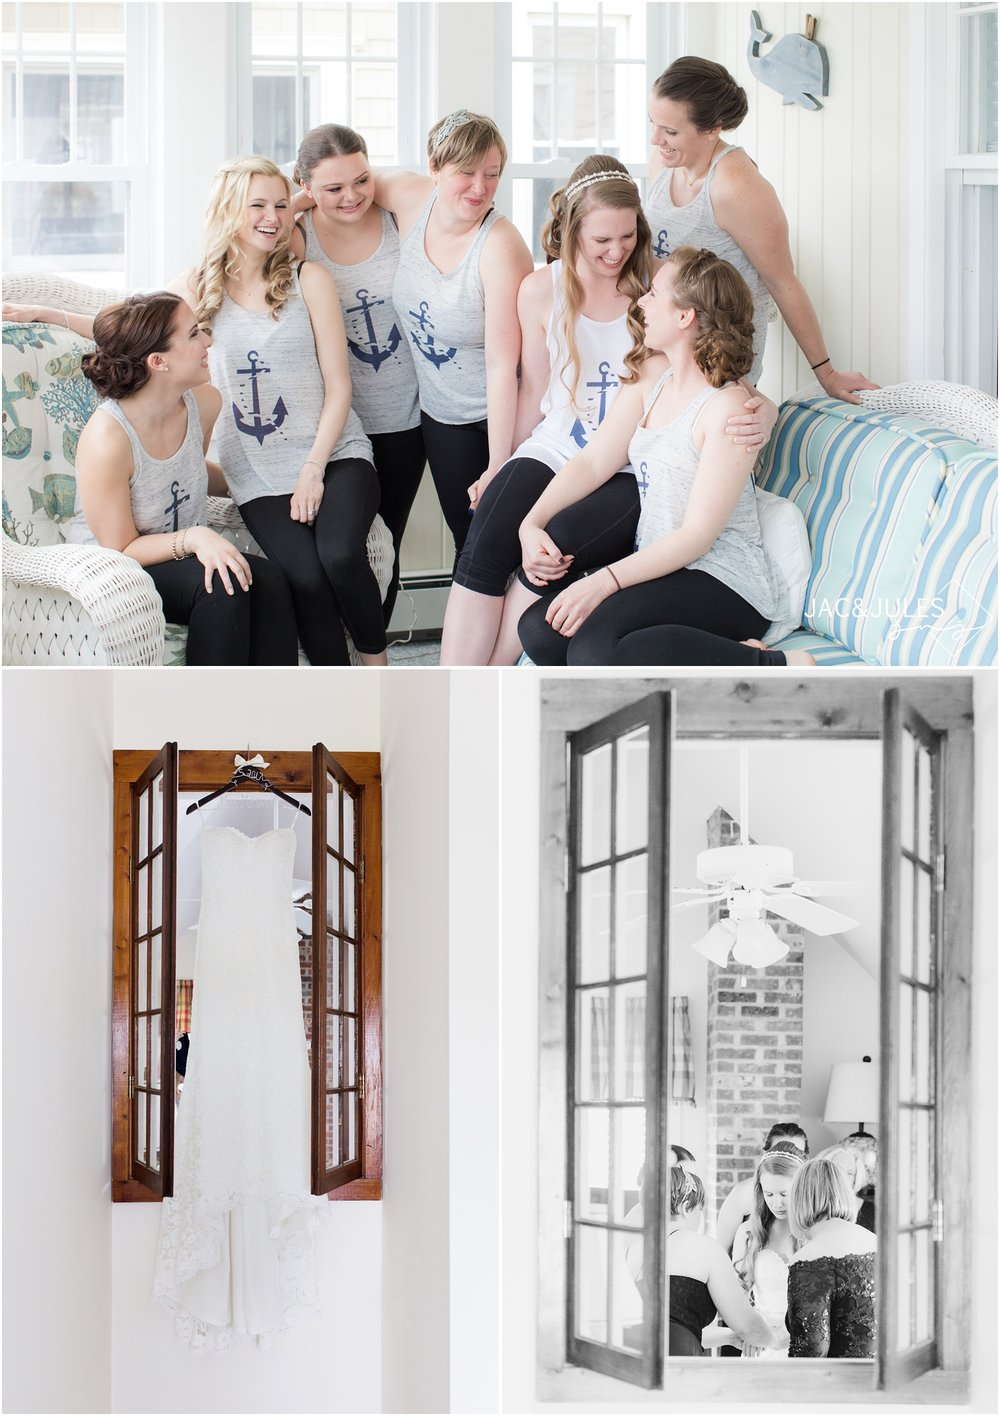 Bridesmaids in matching nautical tank tops, and brides dress hanging in a window at beach home in LBI